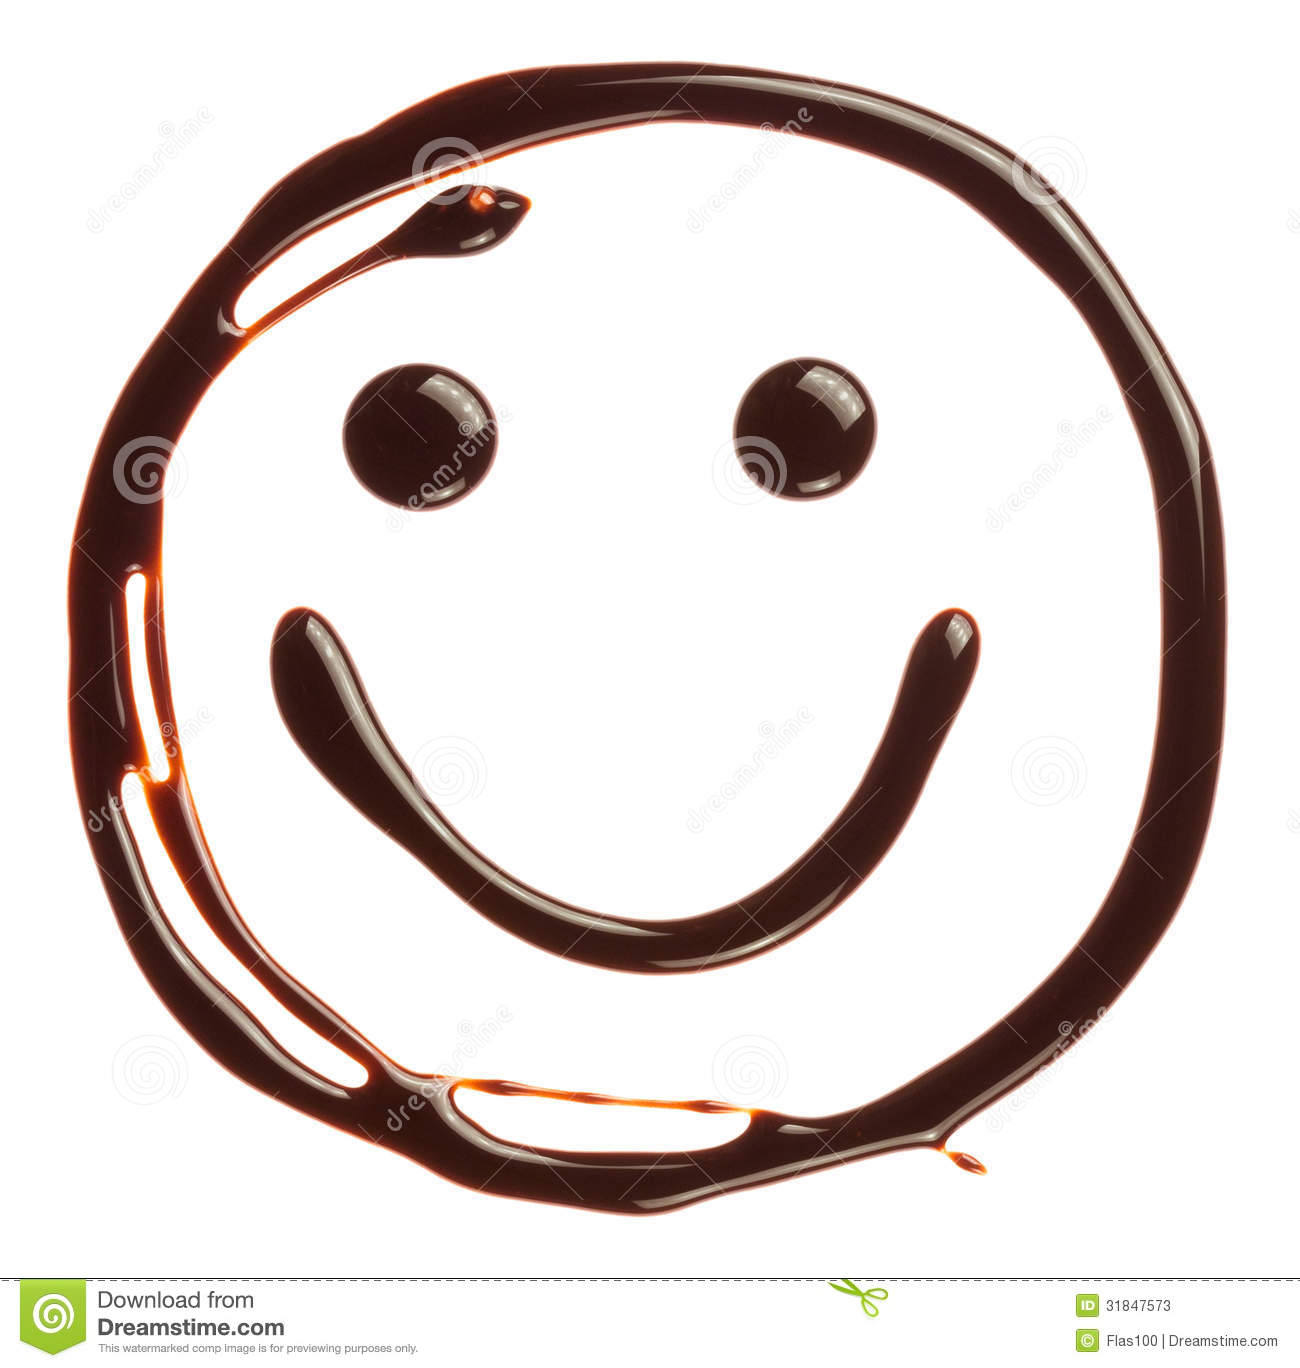 Smiley clipart pancake Cliparts Chocolate Face Clipart Syrup